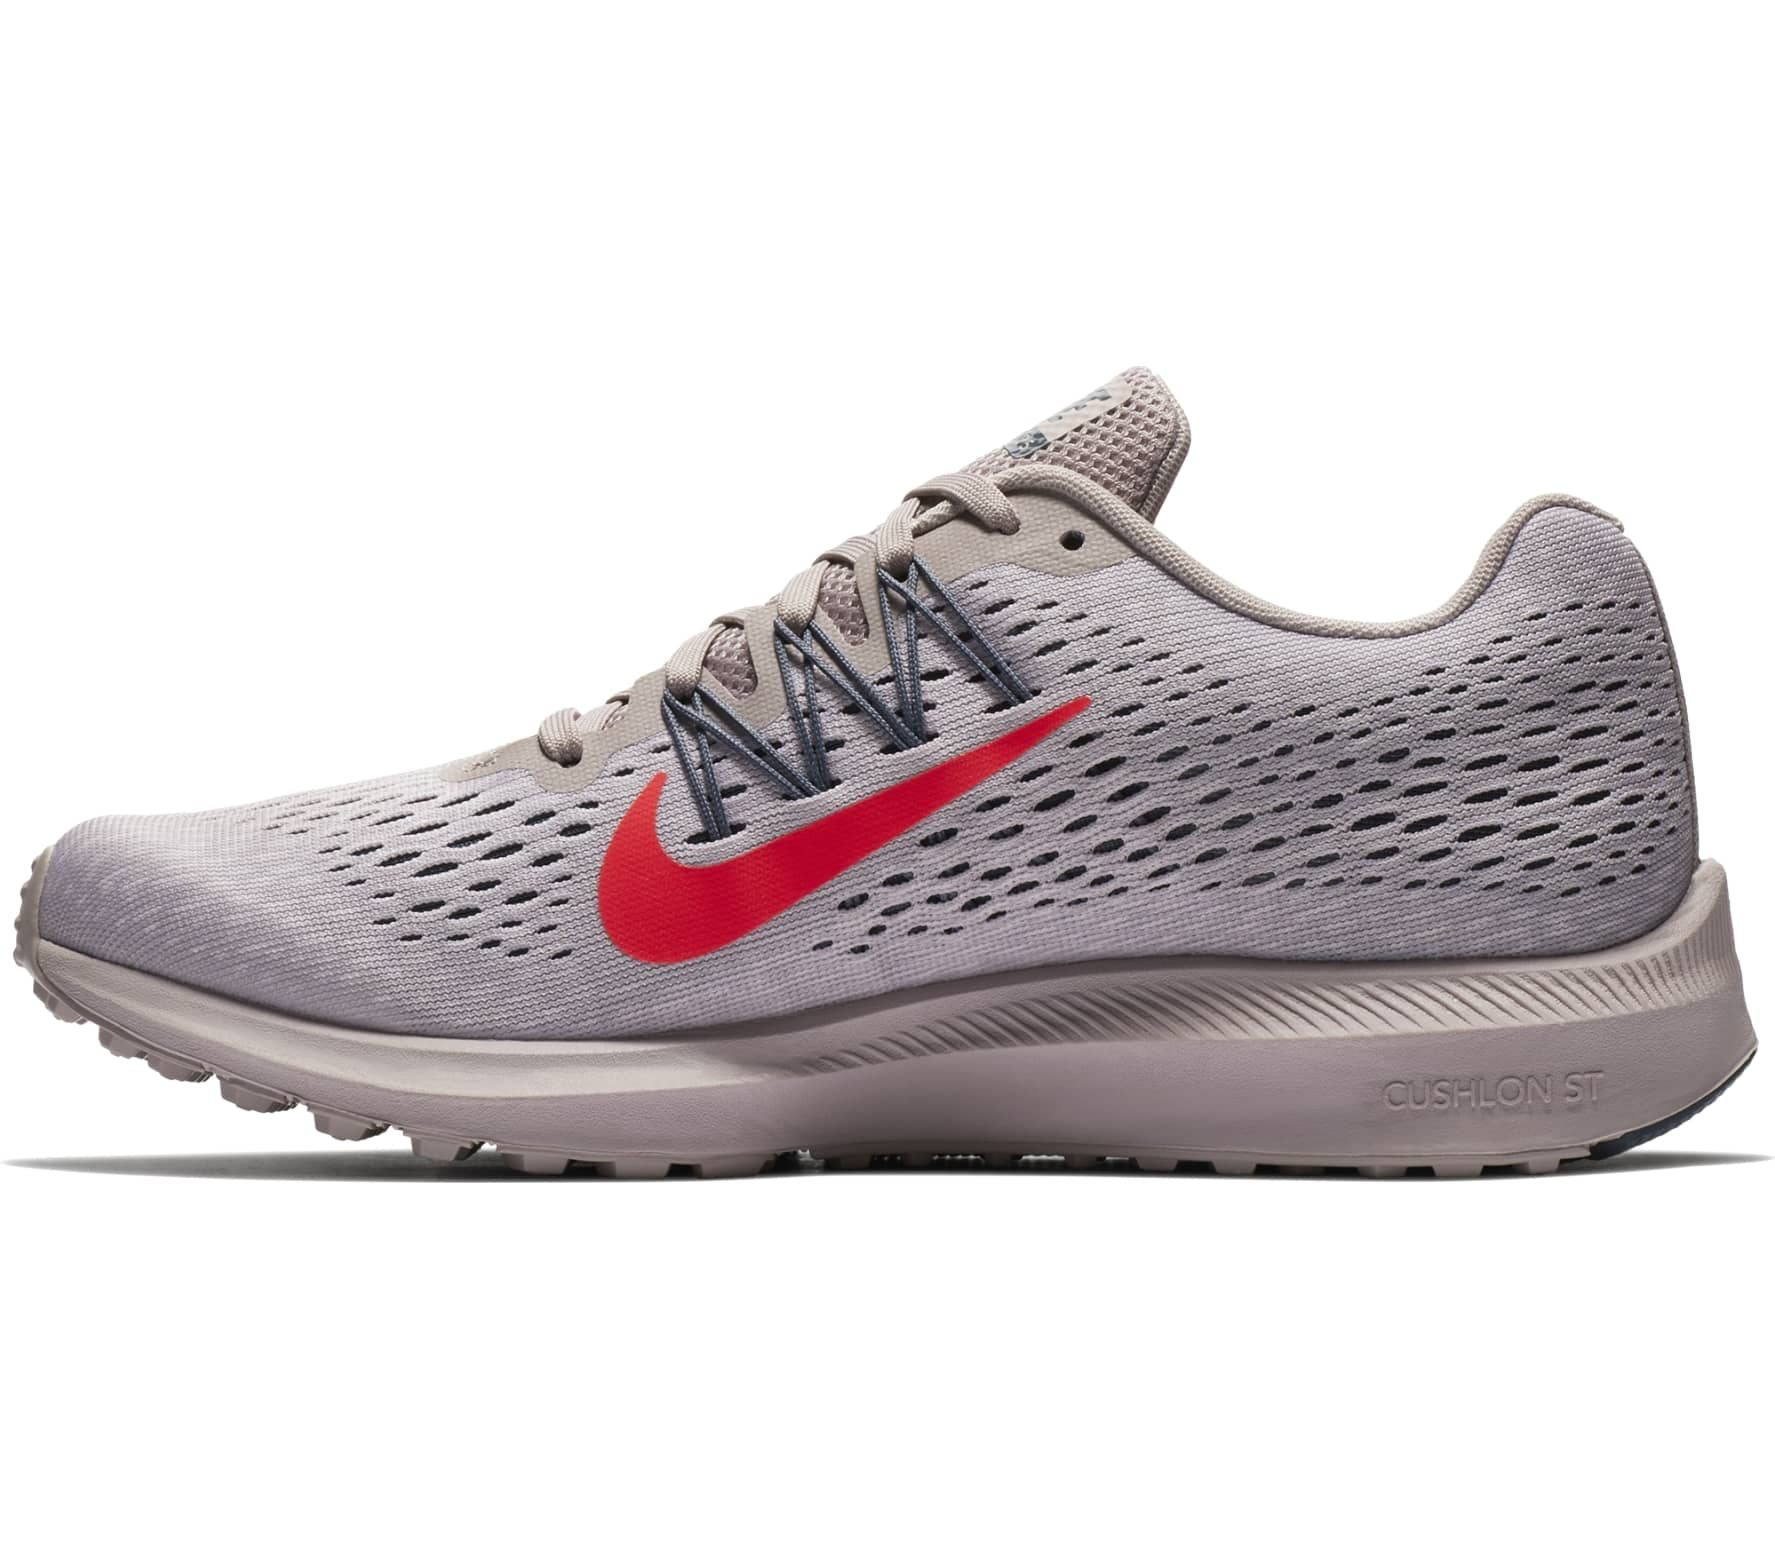 Nike - Air Zoom Winflo 5 women's running shoes (grey/red ...